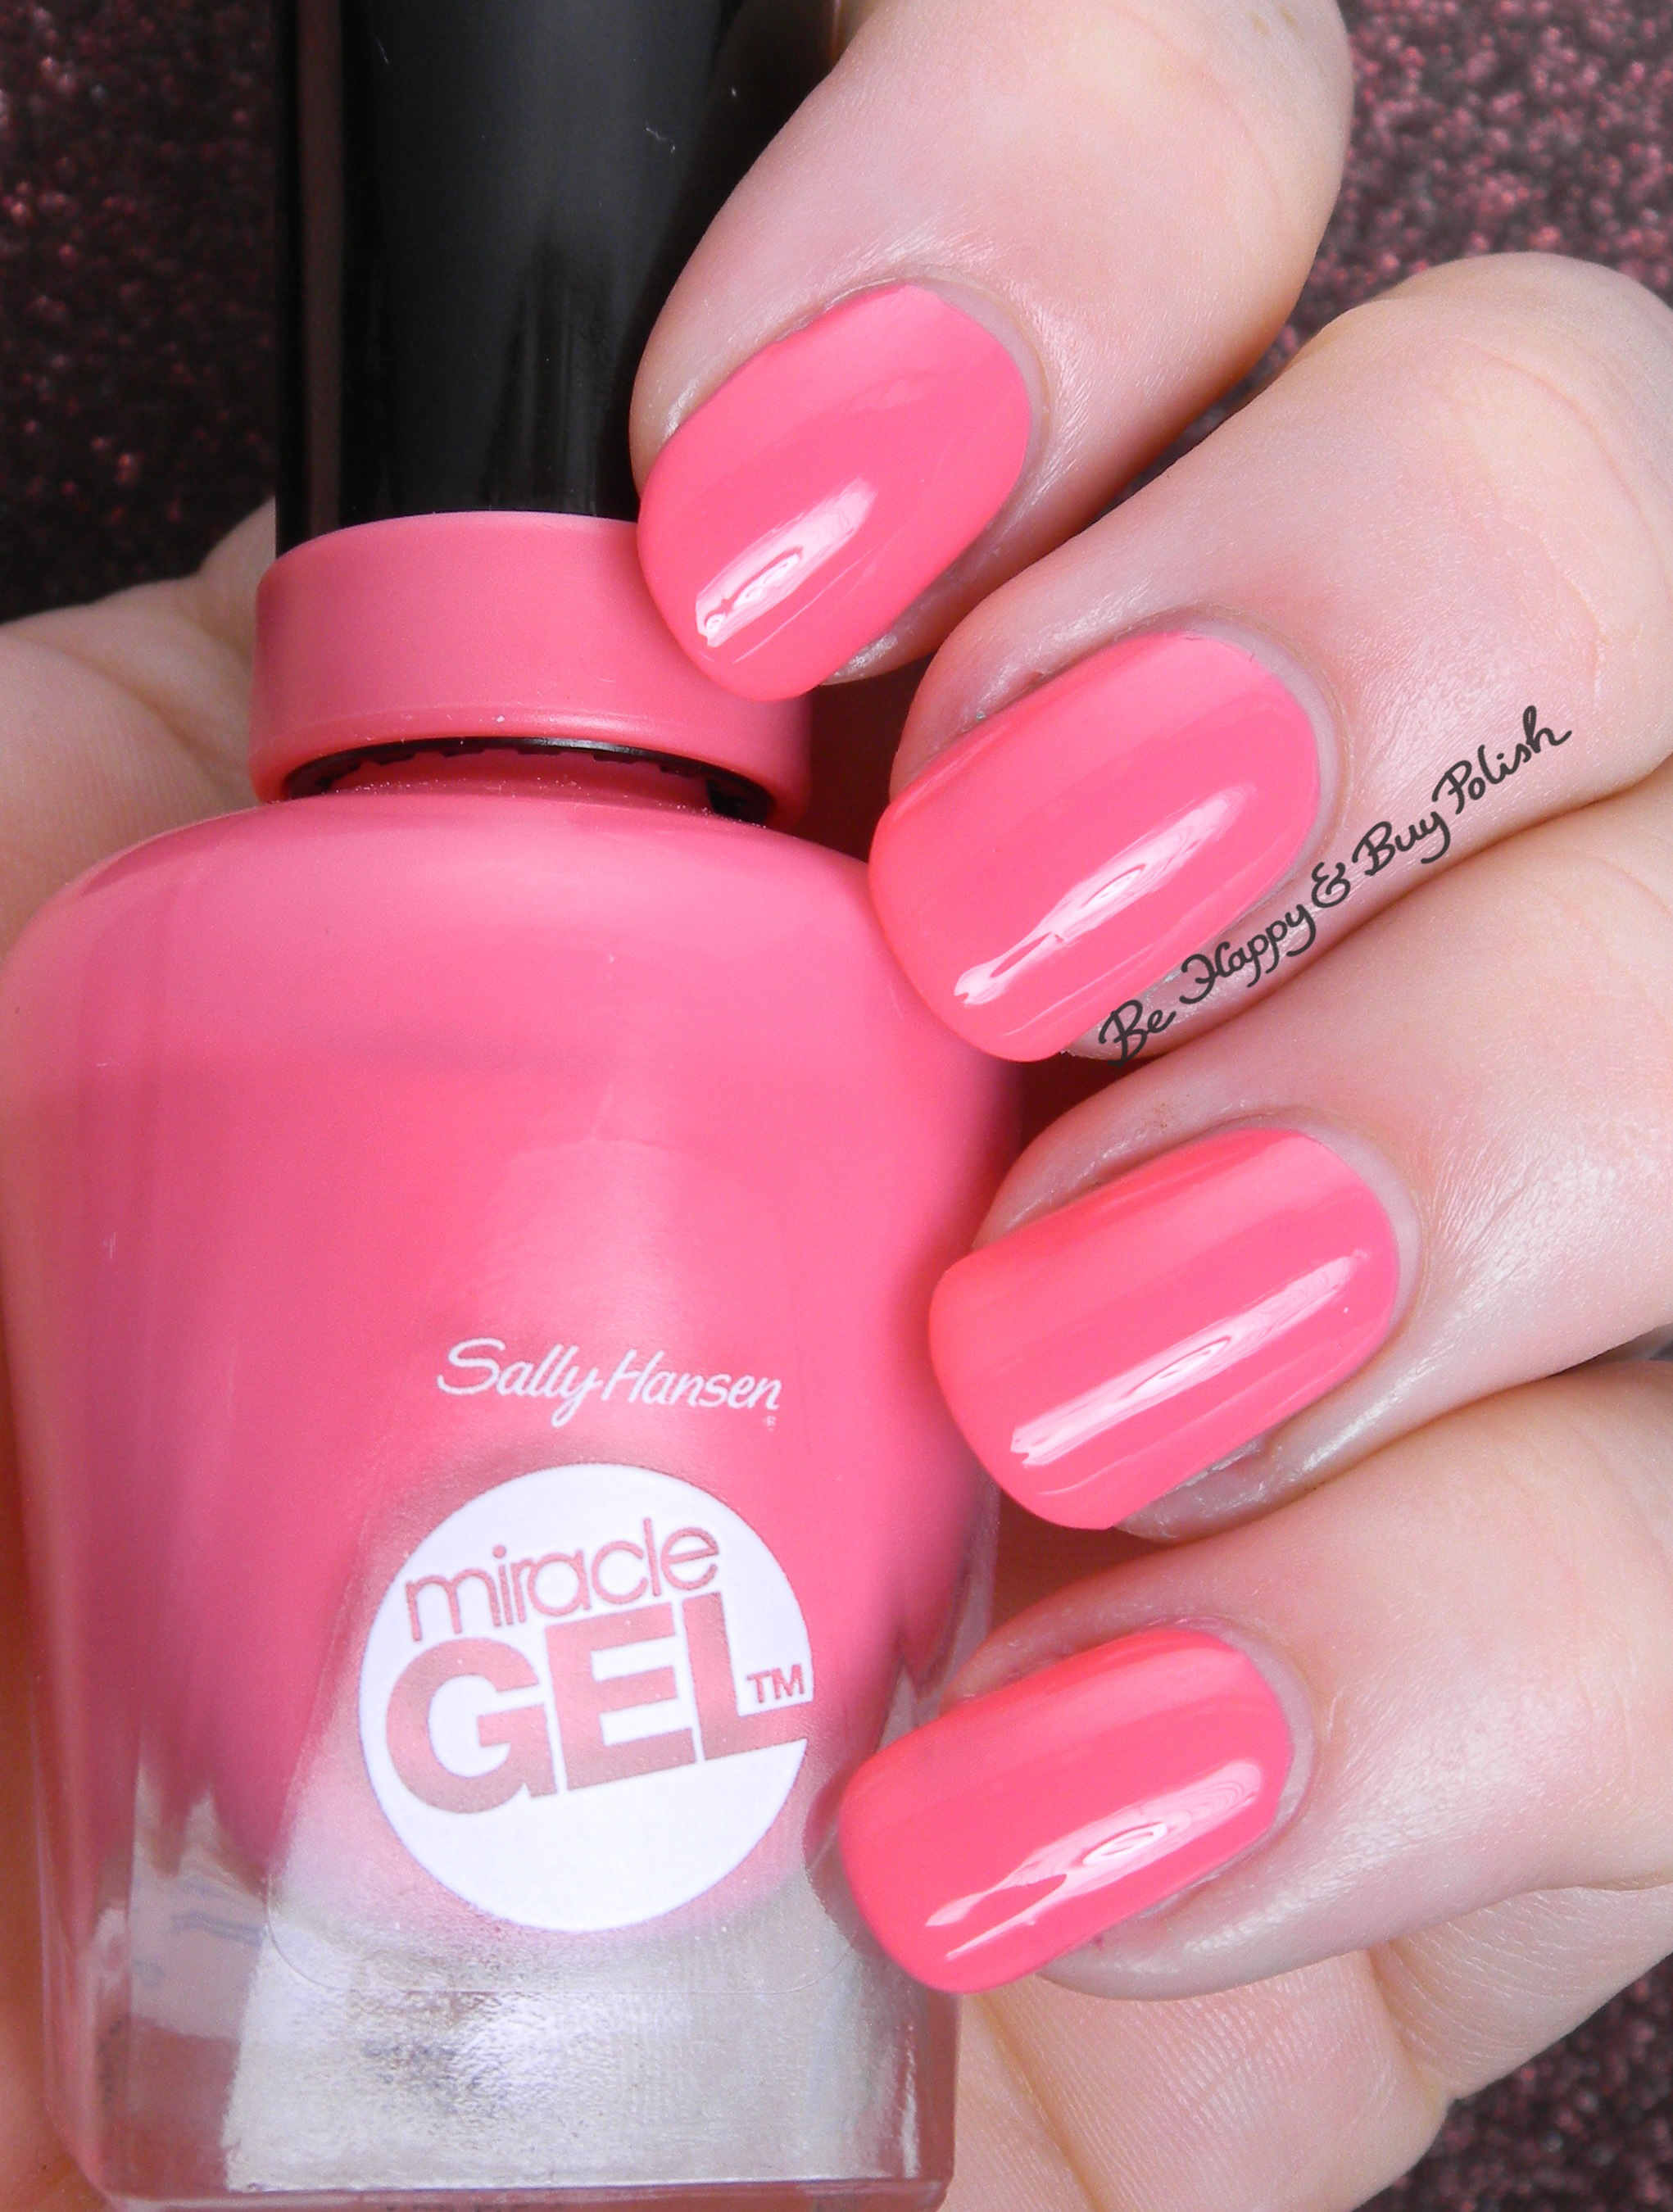 Sally Hansen Miracle Gel Limited Edition Duo Pack Nail